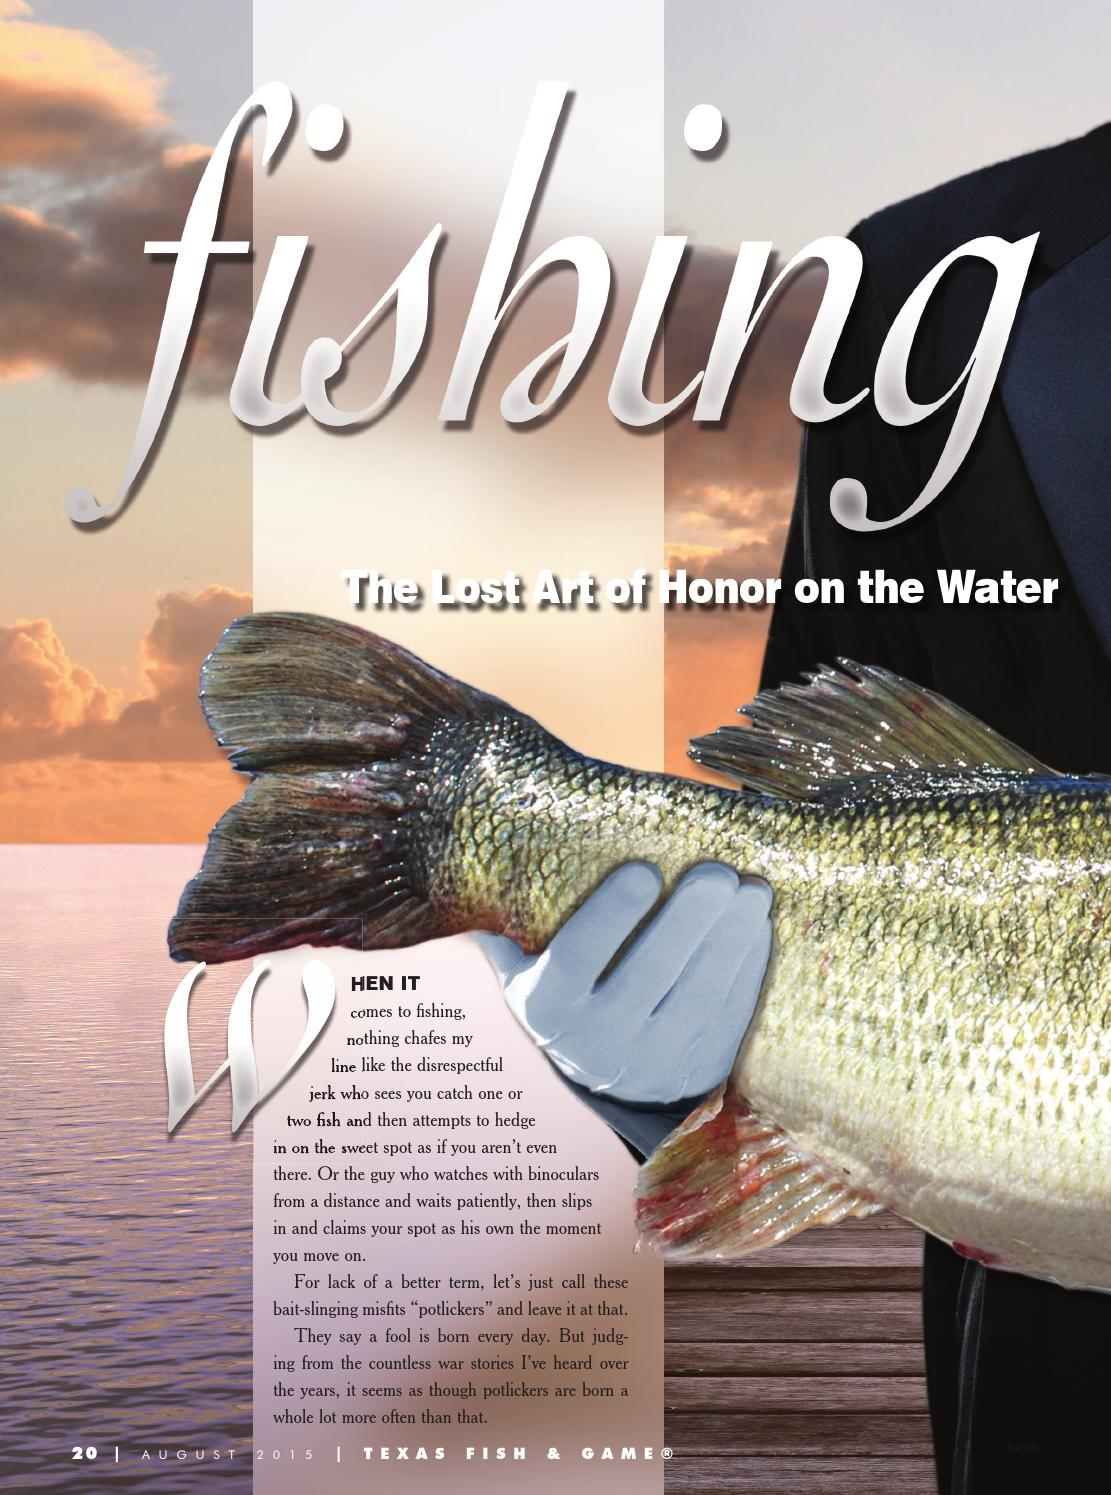 Texas fish game august 2015 by texas fishing and hunting for Texas game and fish